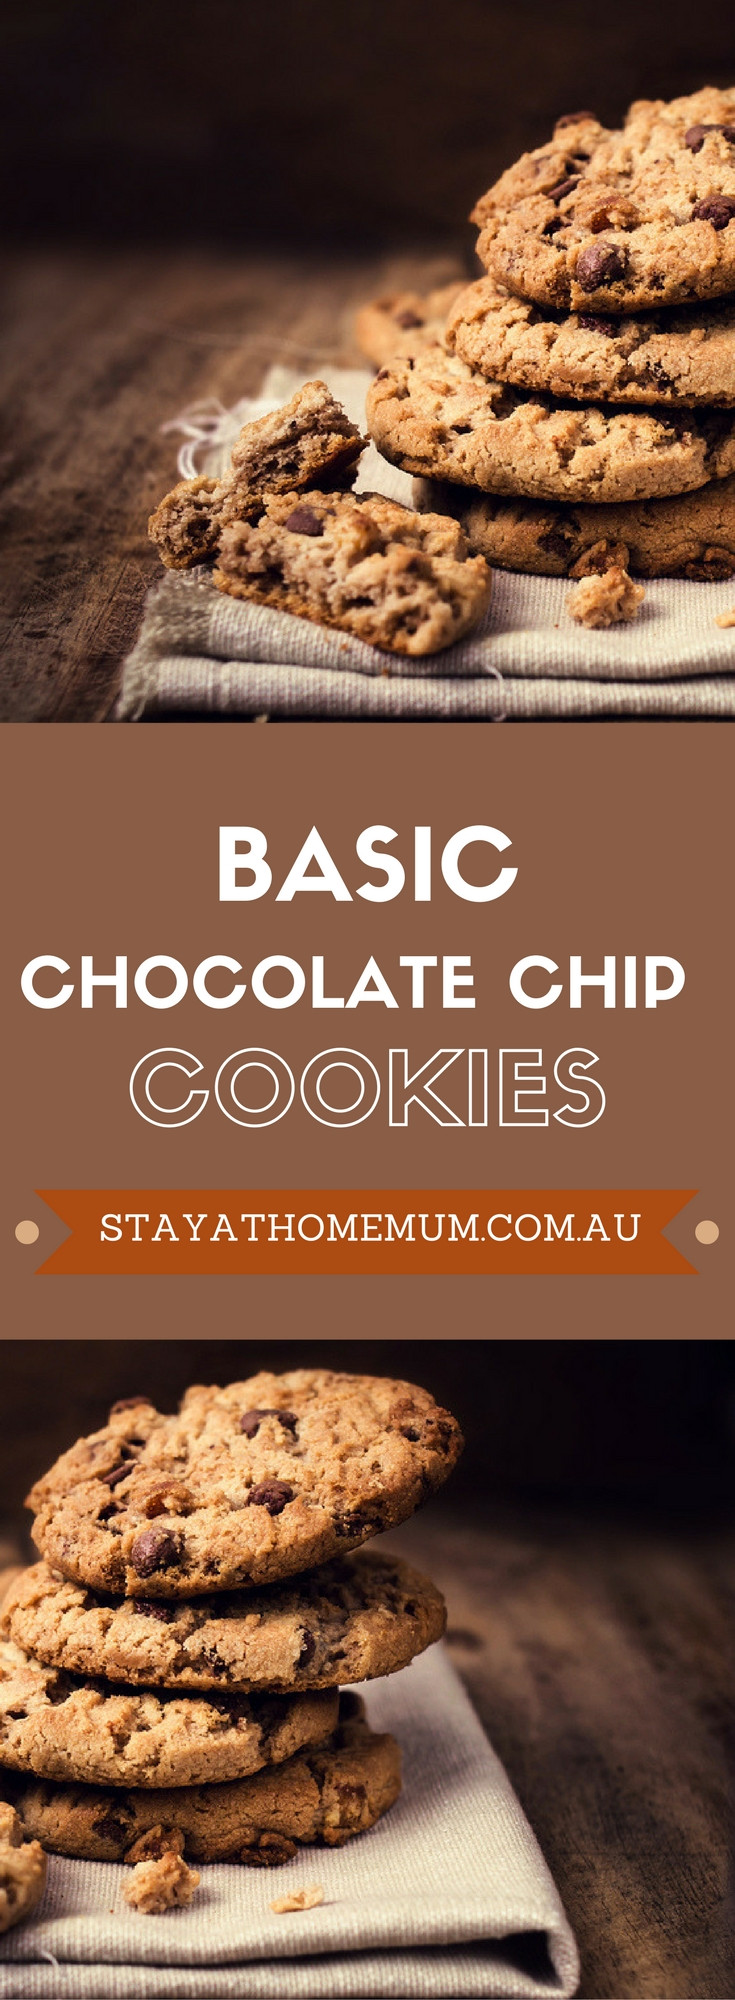 Basic Chocolate Chip Cookies  Basic Chocolate Chip Cookies Stay at Home Mum